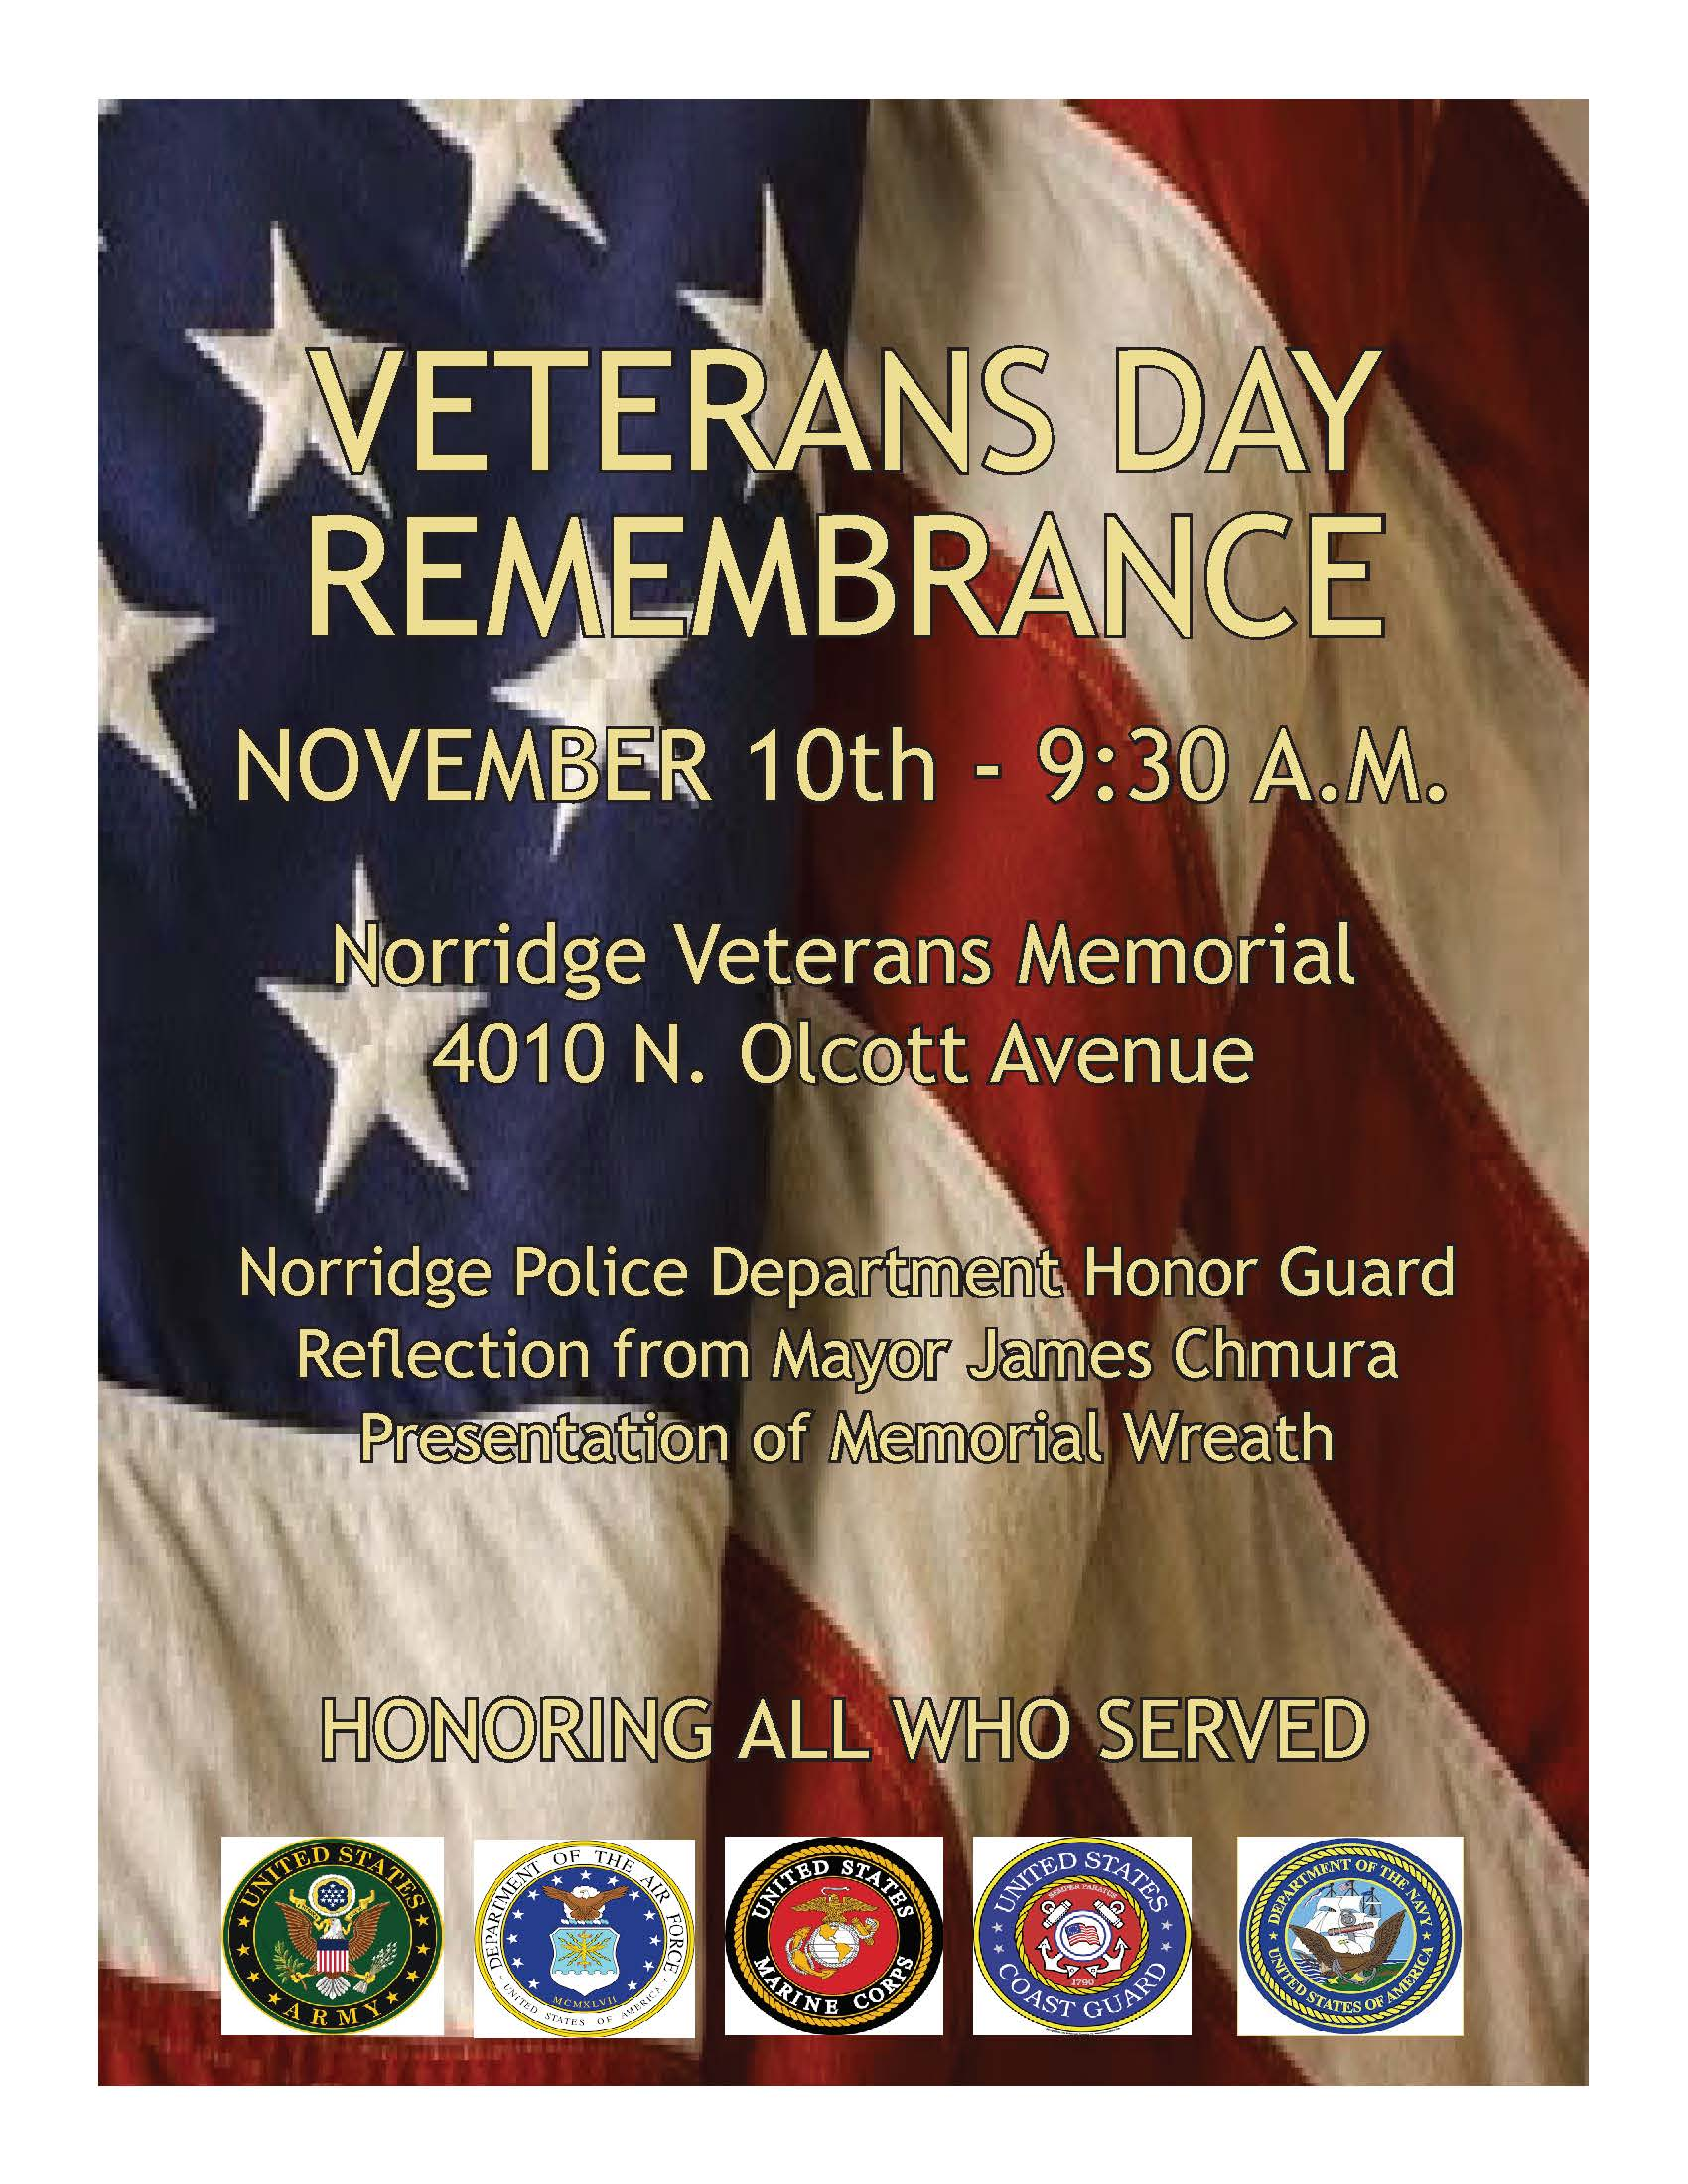 Veterans_Day_Rememberance_Flier